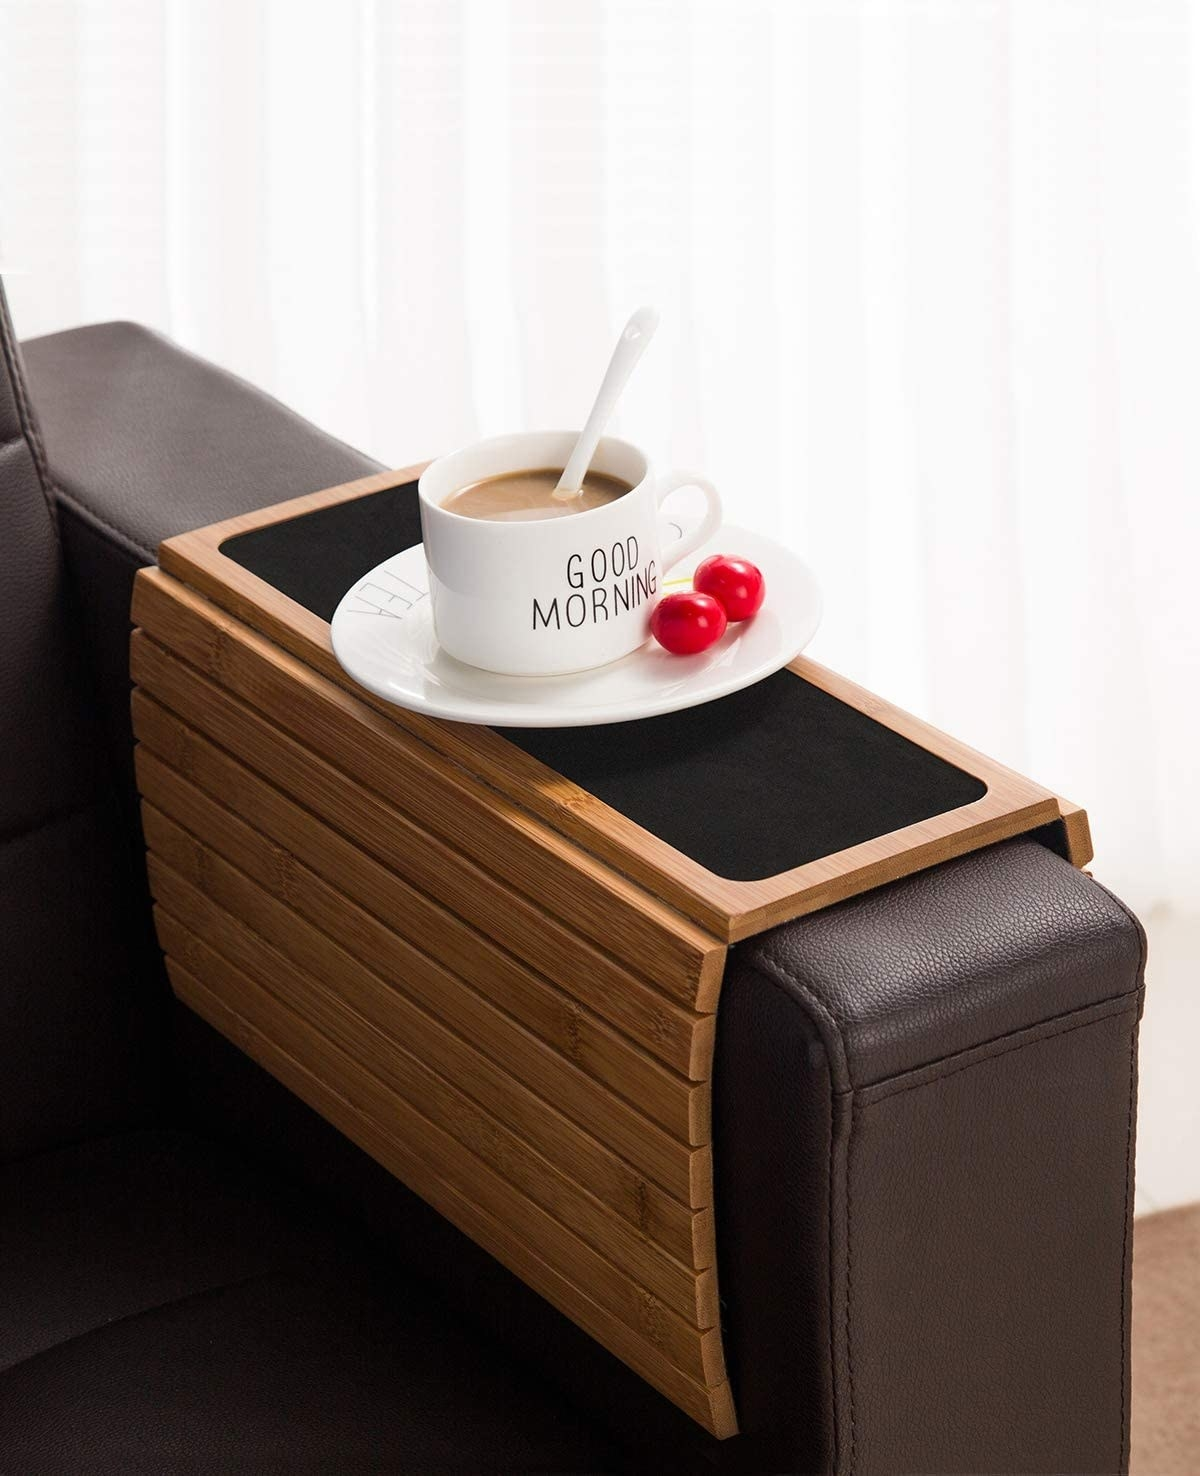 The light brown-colored wood slotted tray over the side of a couch with a black mat on the top and a coffee cup on it